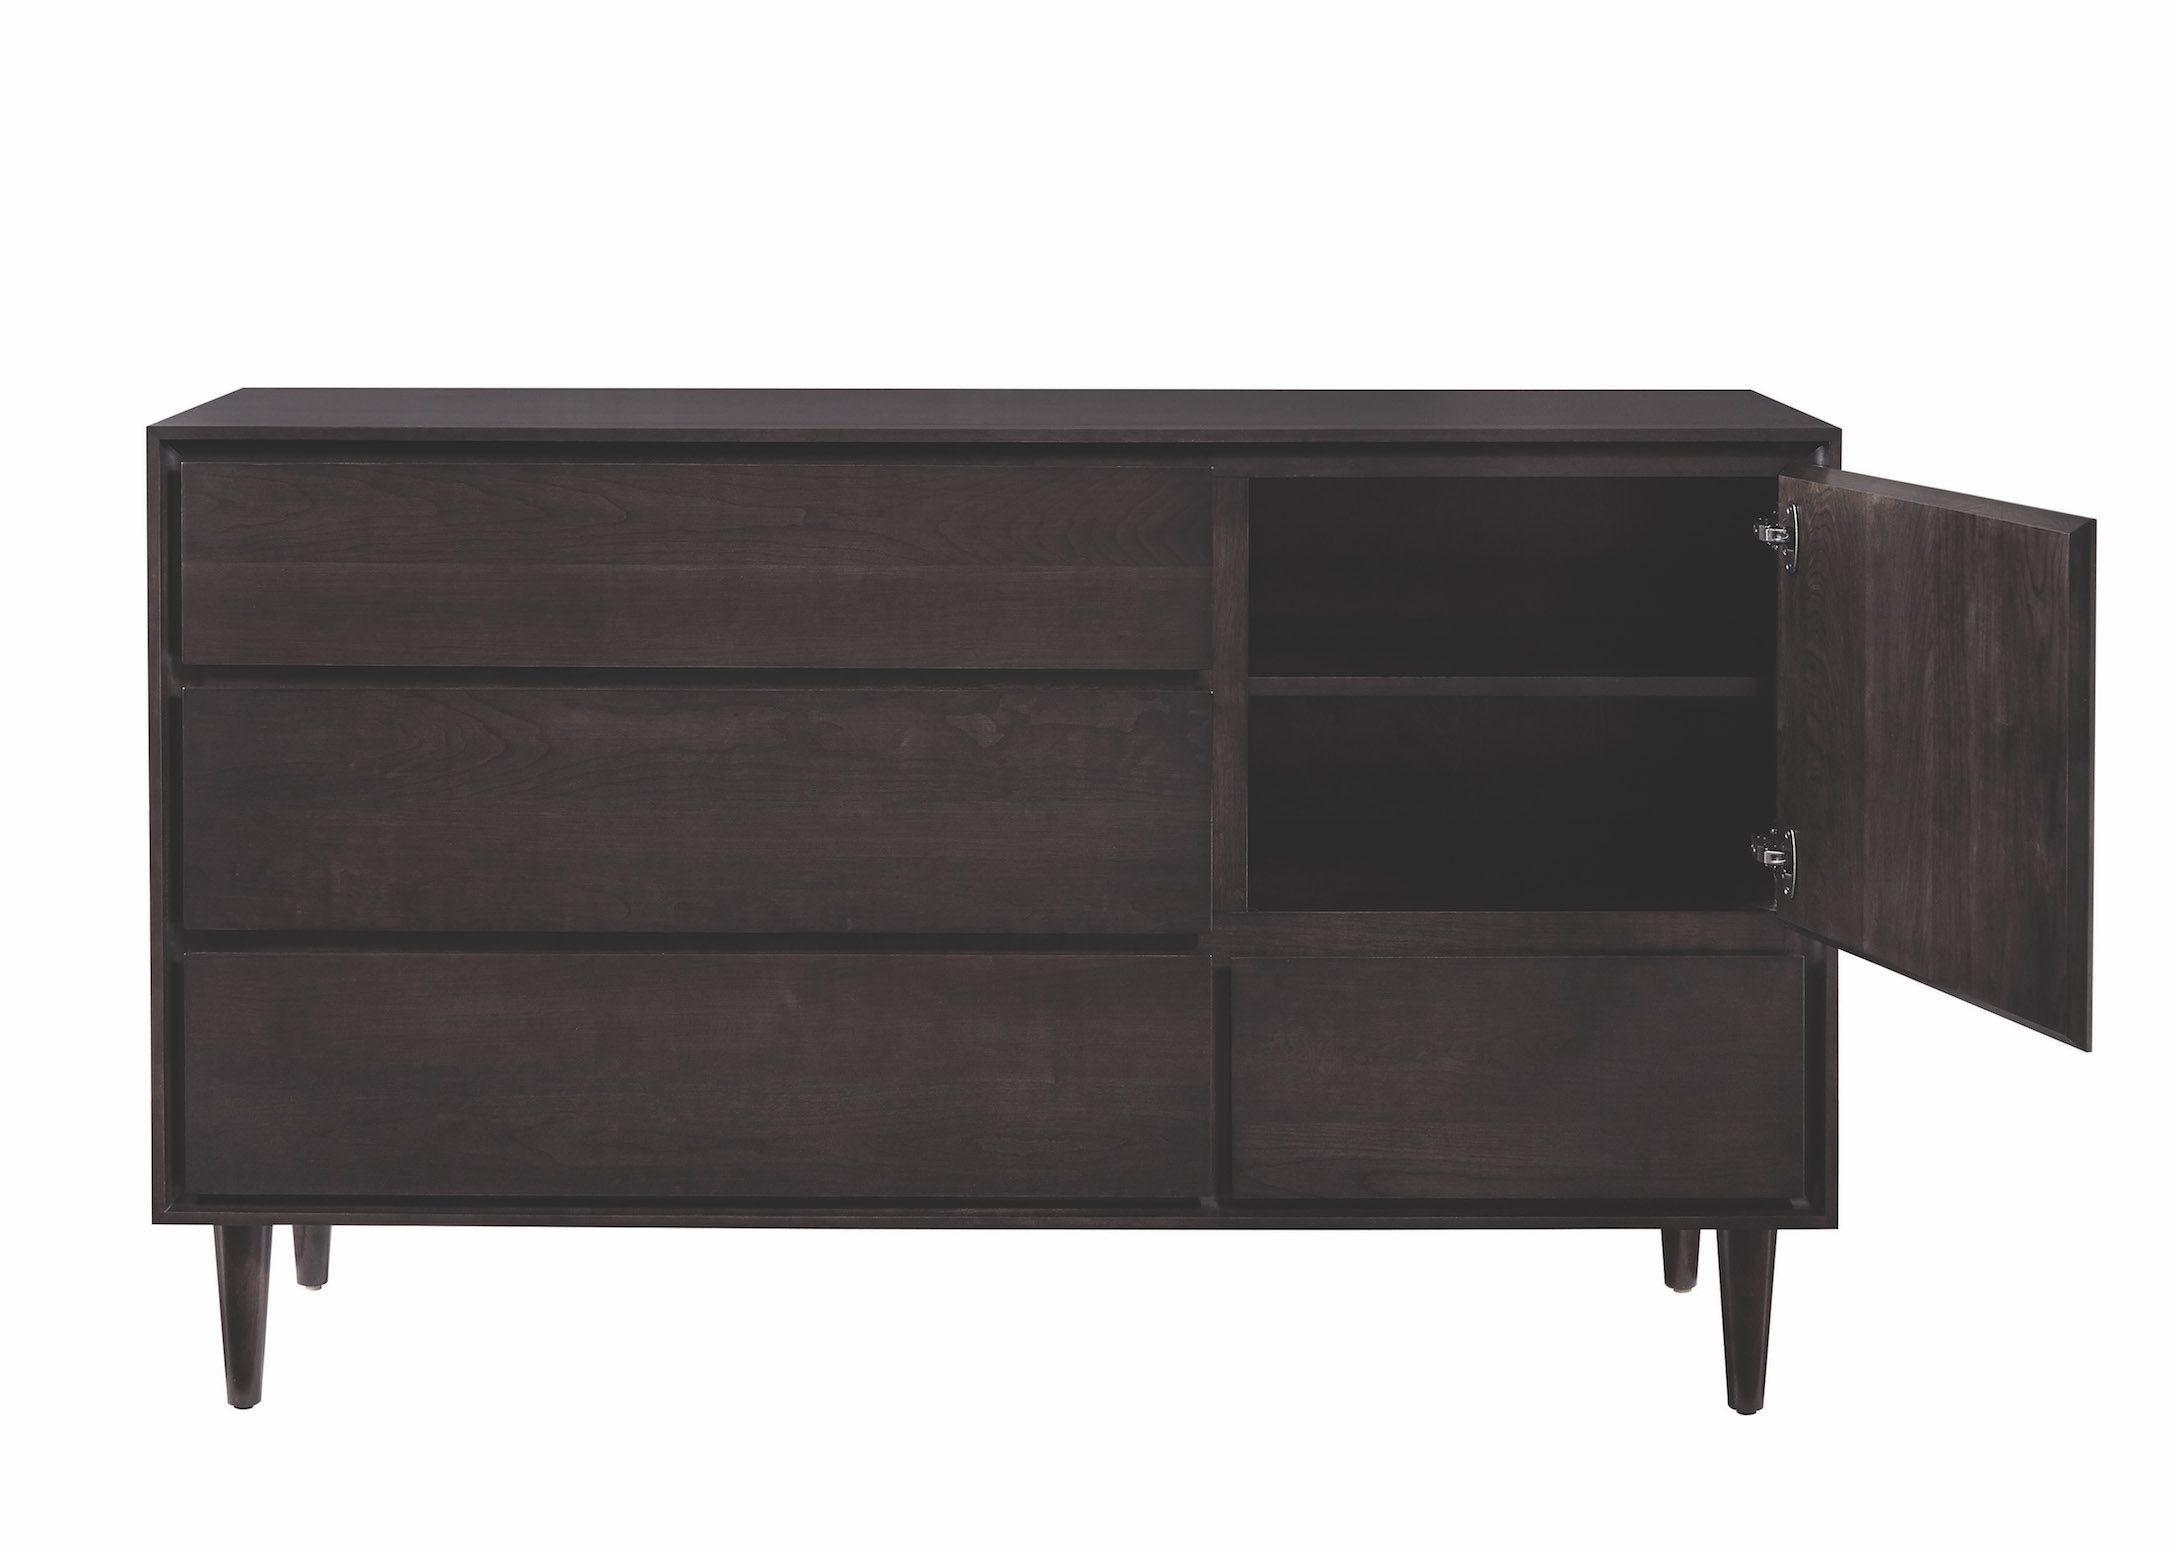 Jasper-Door-Chest-Product-Shot-B-2.jpg